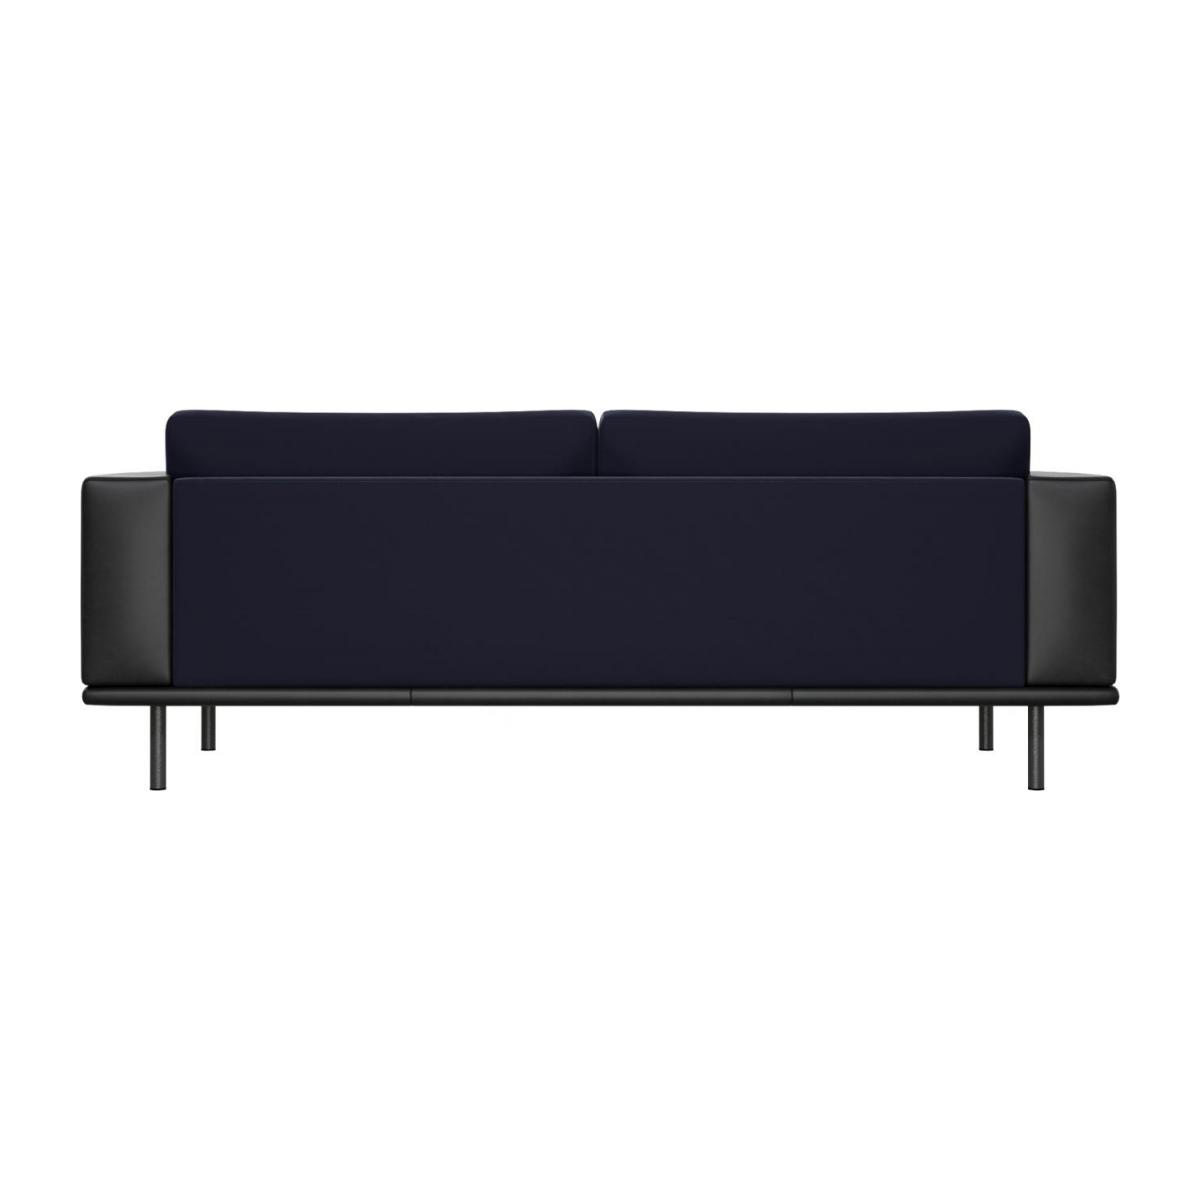 3 seater sofa in Super Velvet fabric, dark blue with base and armrests in black leather n°3